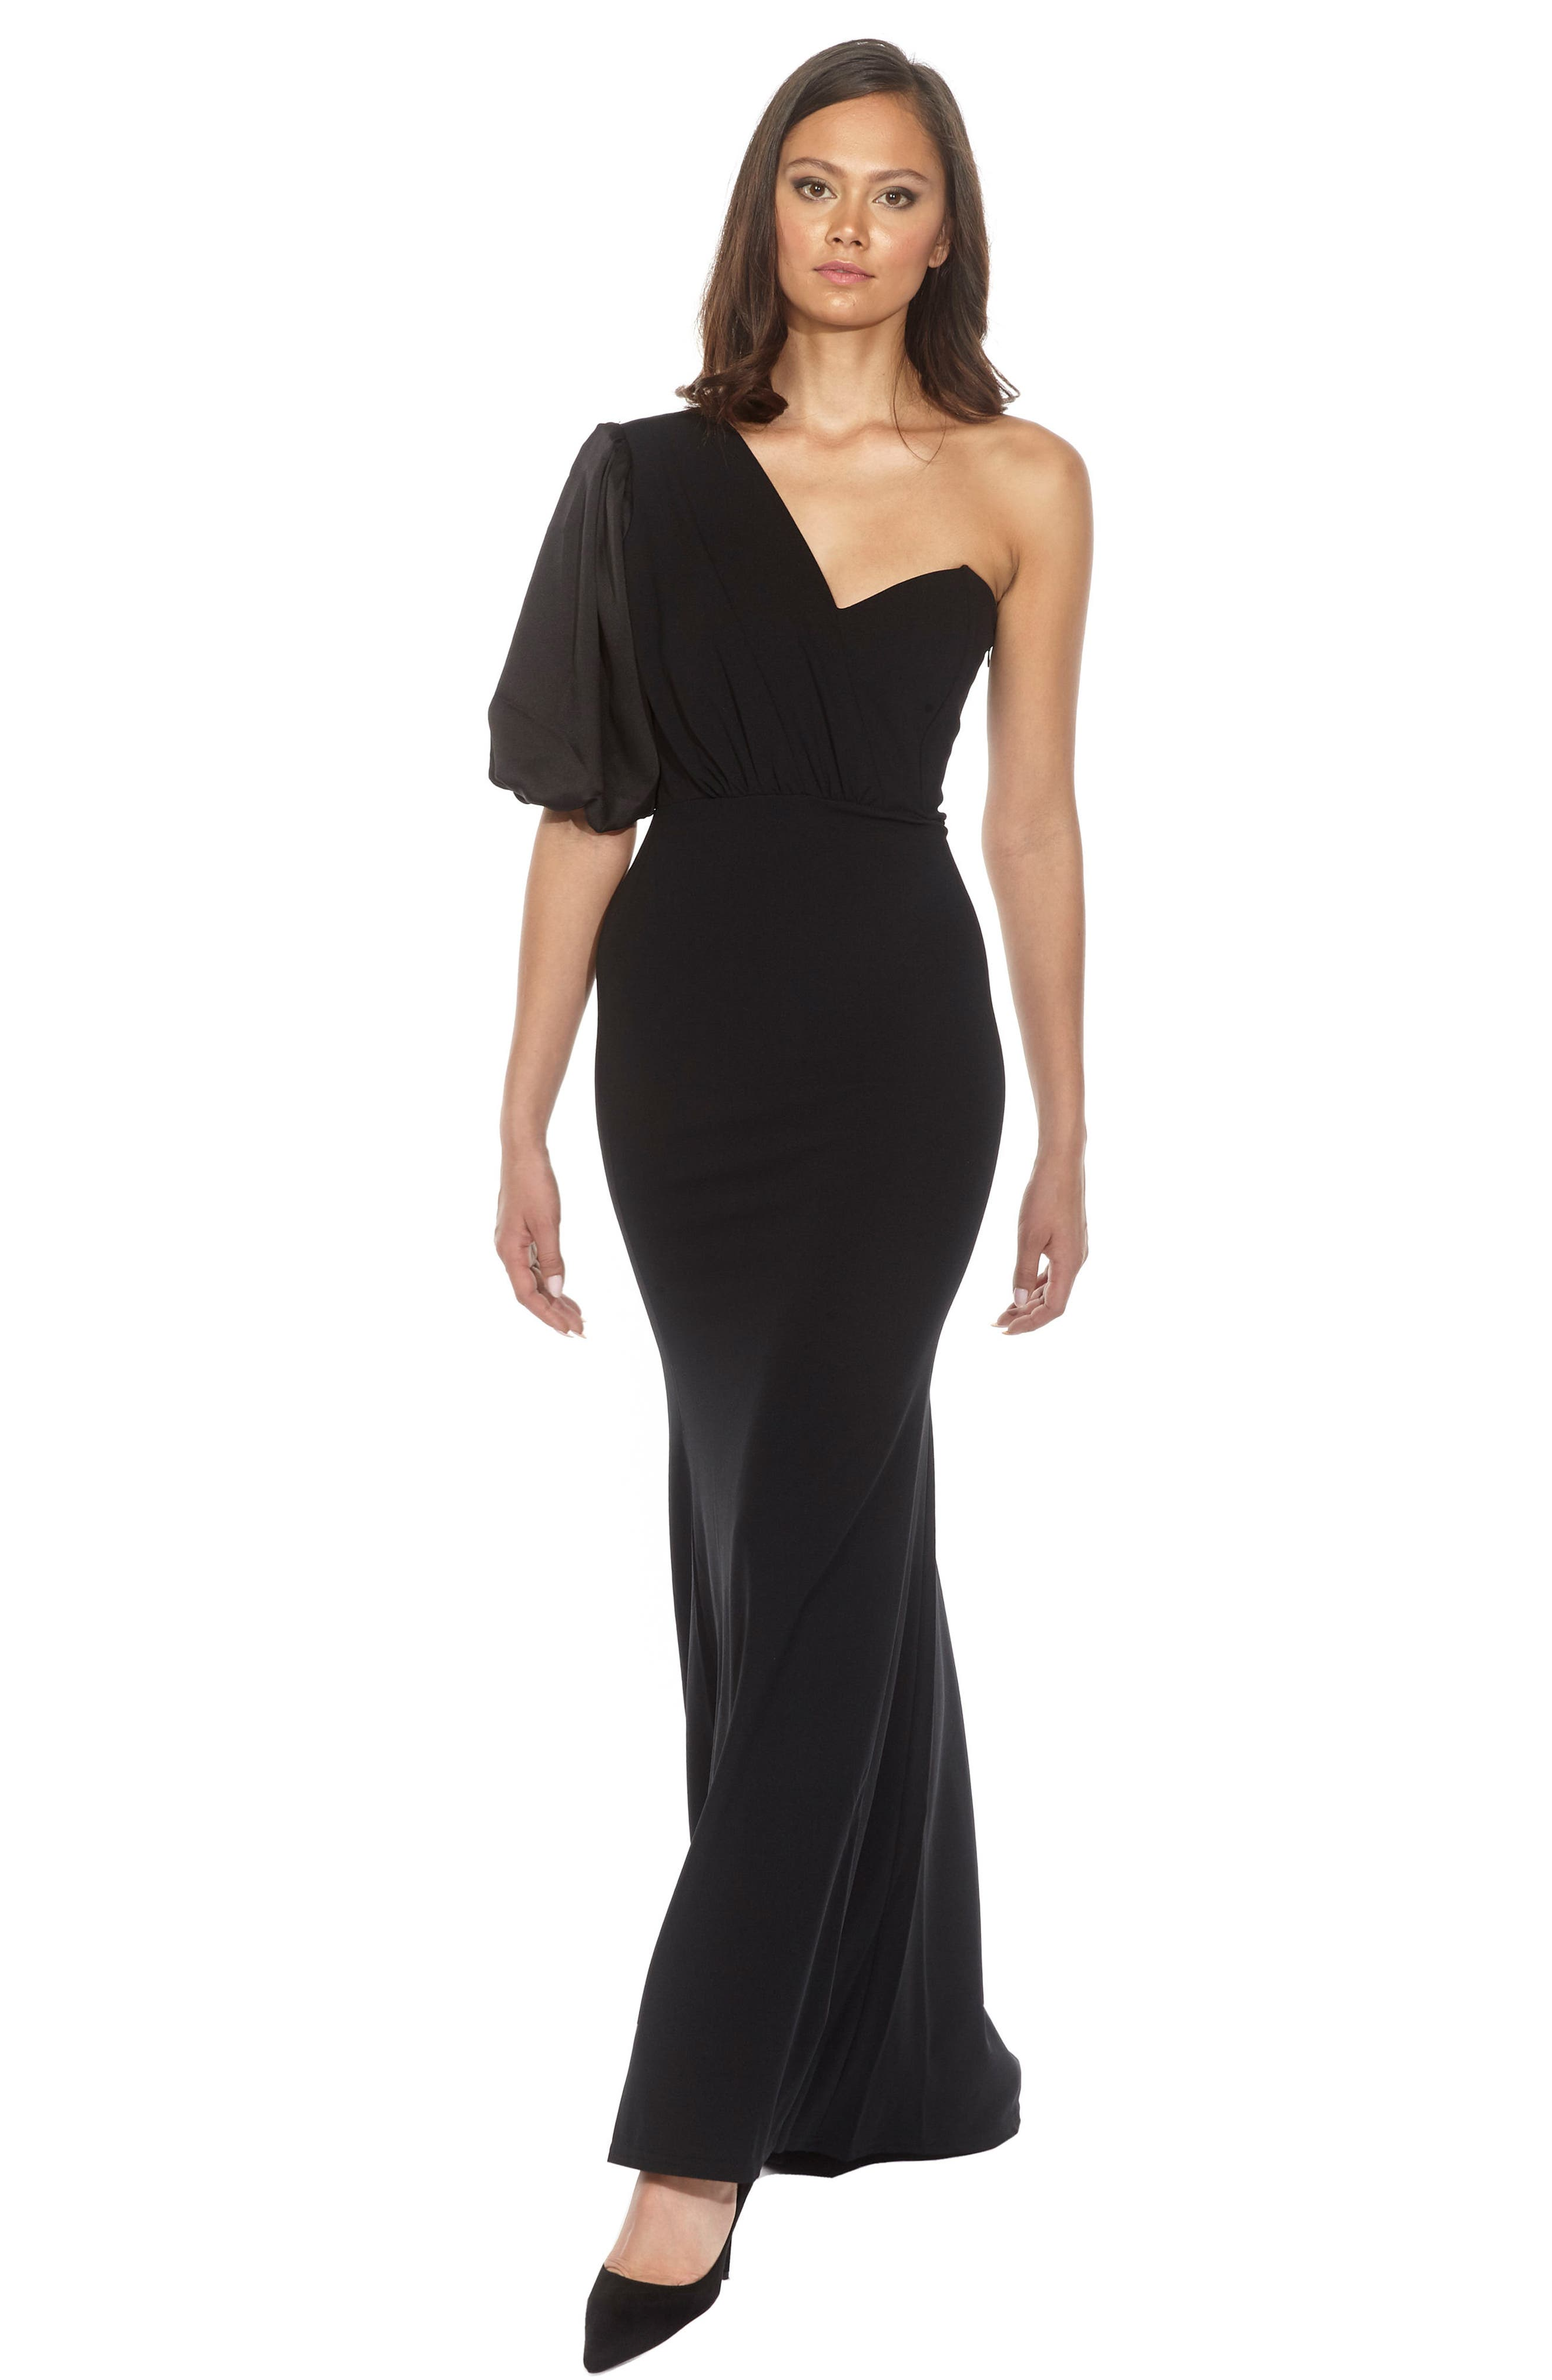 Nawell One-Shoulder Puff Sleeve Gown,                             Alternate thumbnail 3, color,                             001